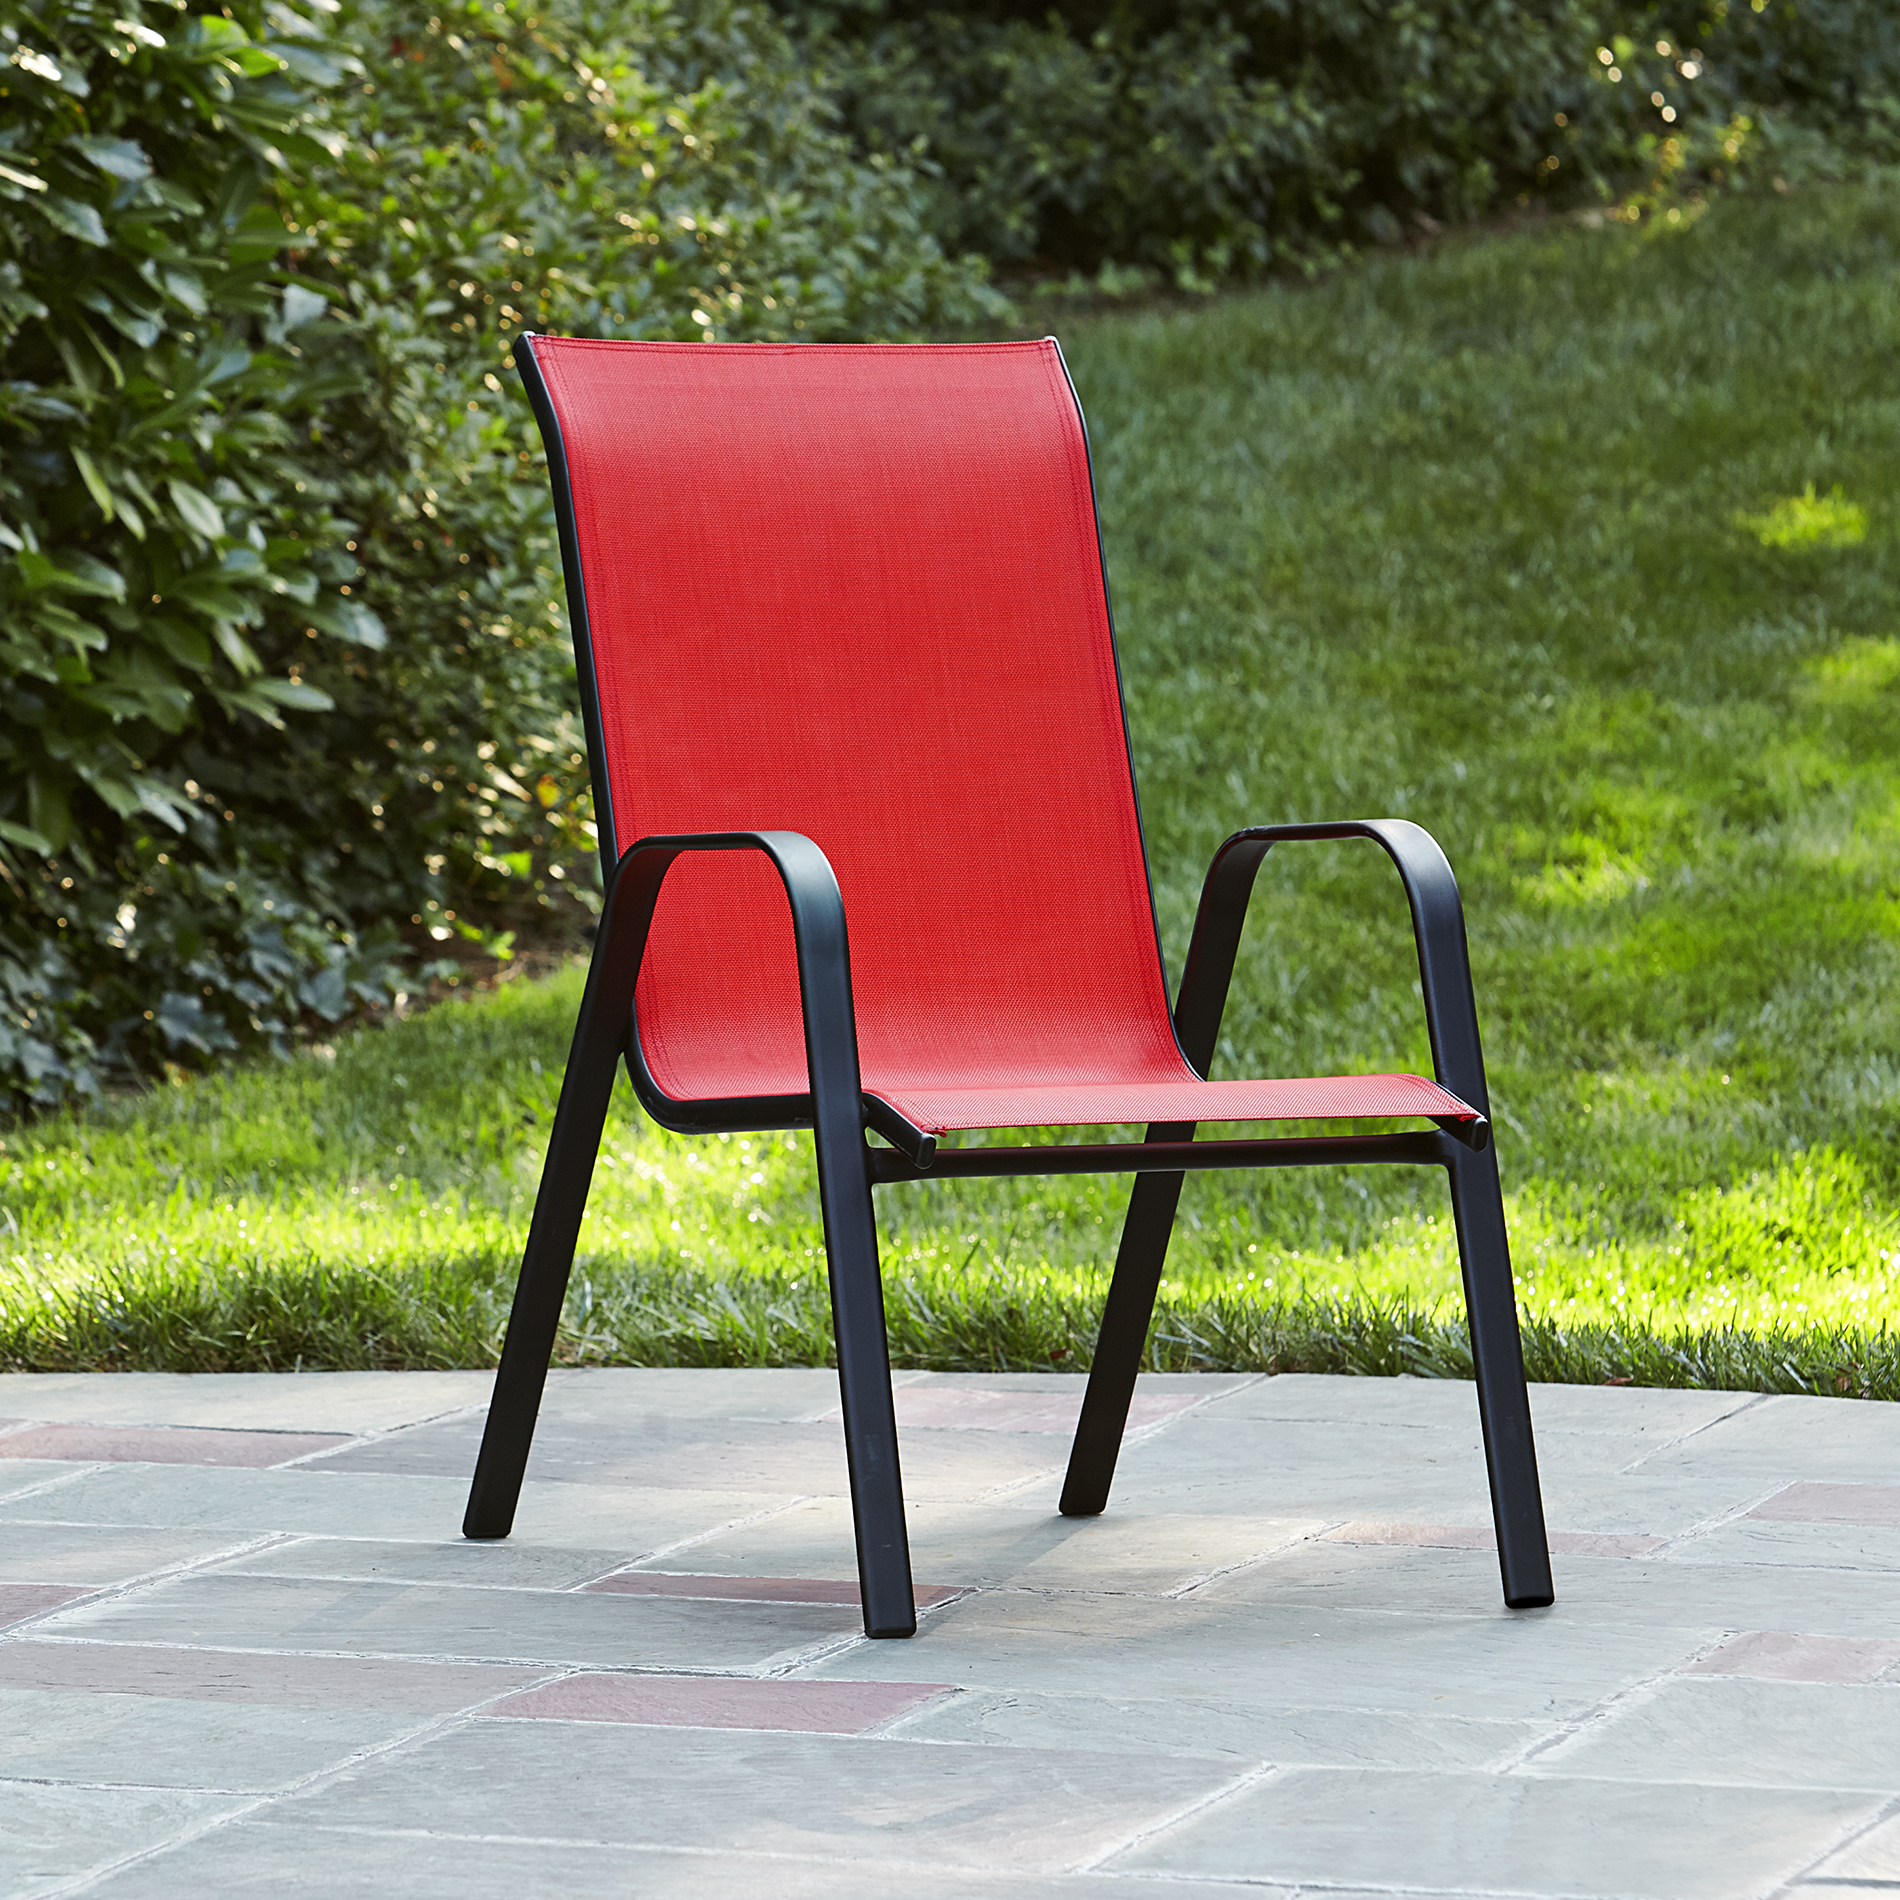 Stackable Lawn Chairs Essential Garden Bartlett Solid Red Stack Chair Kmart